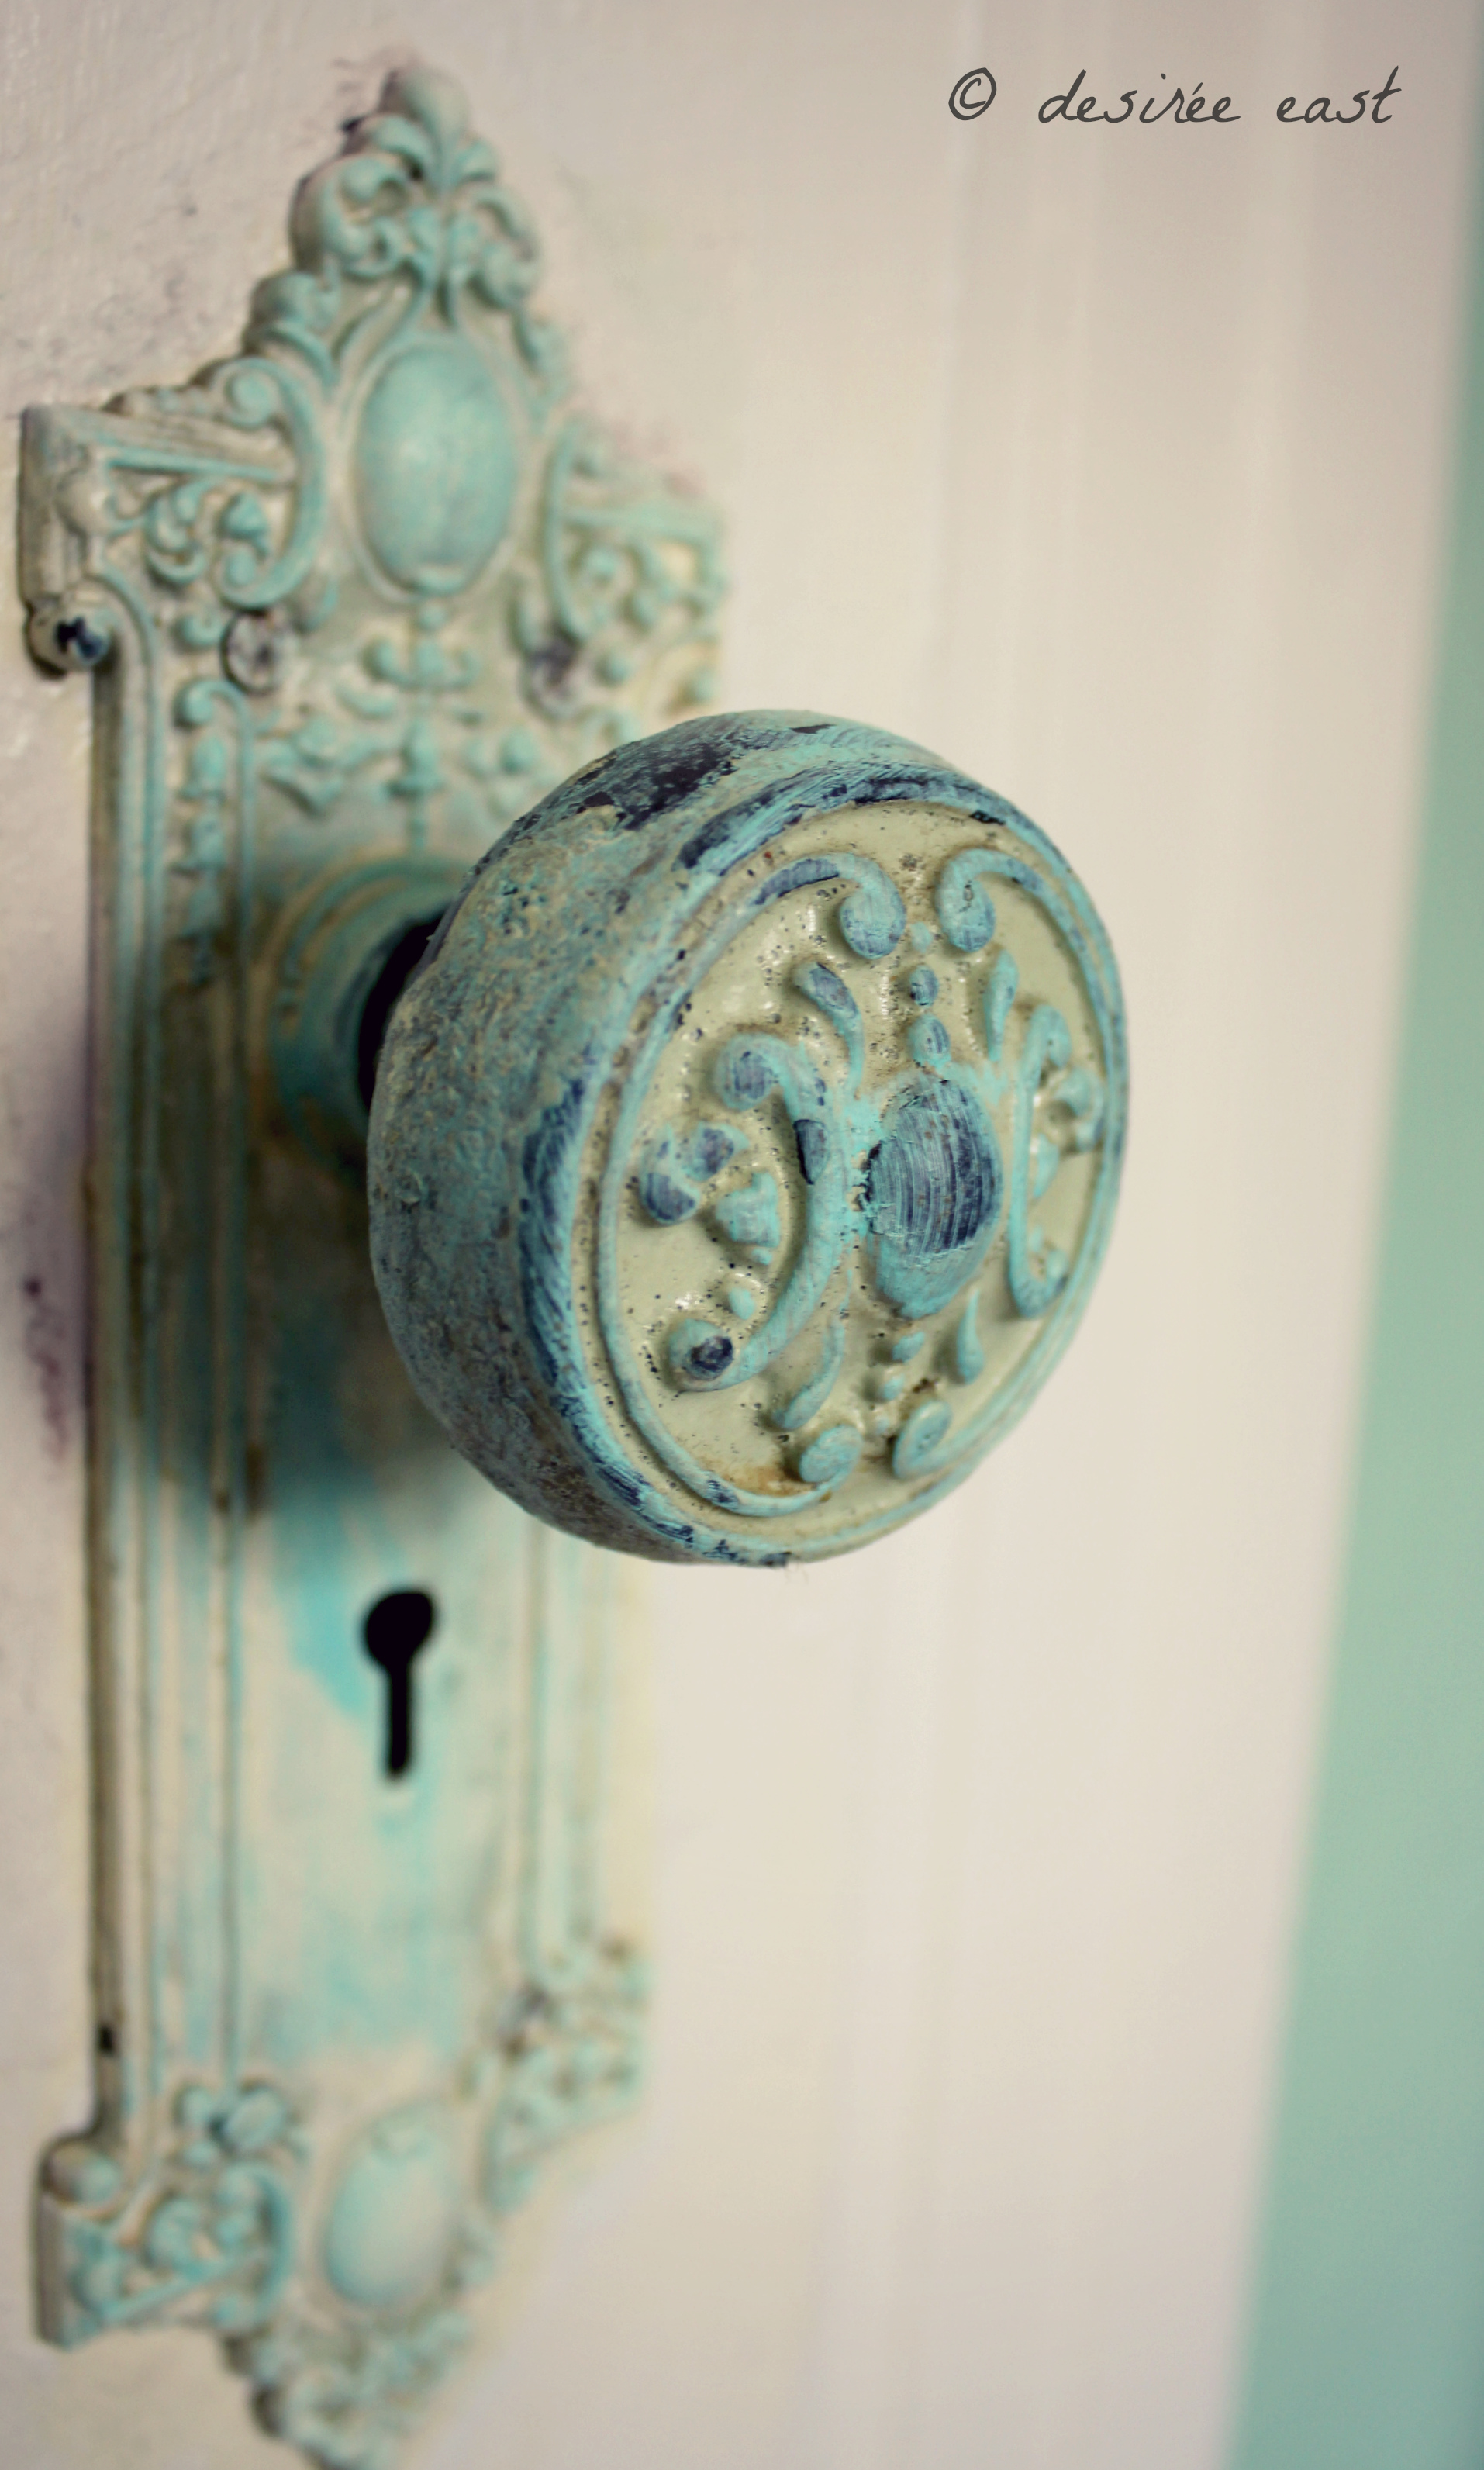 i heart this antique door knob. ventura, california. photo by desiree east